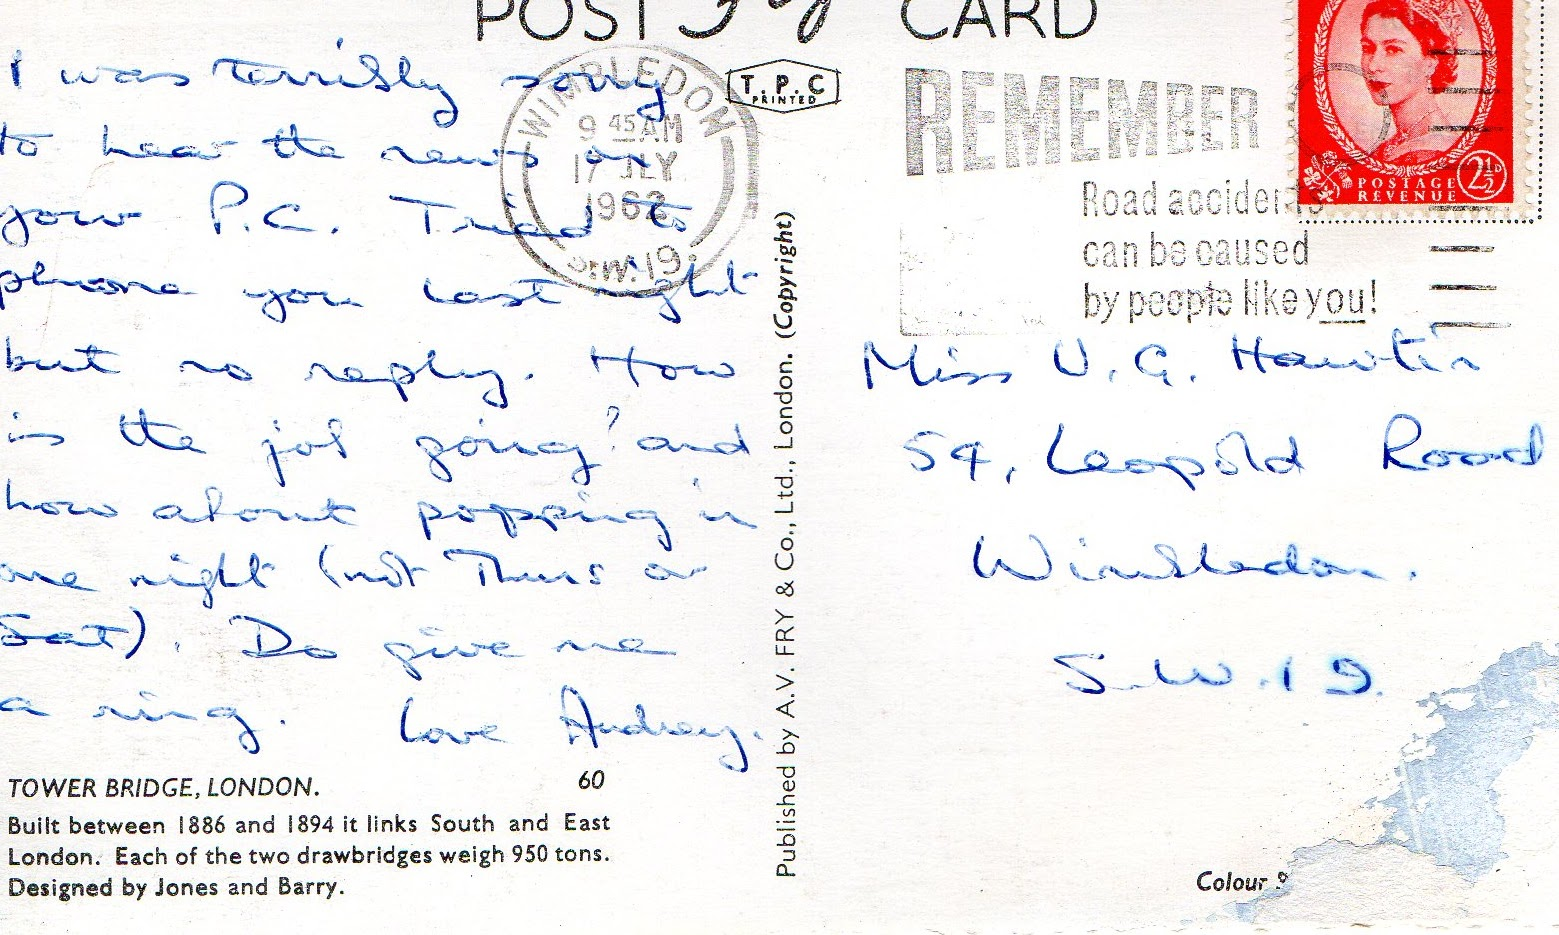 vintage, postcard, London,, handwriting, postmark, stamp, 1962, Wimbledon, Tower Bridge,